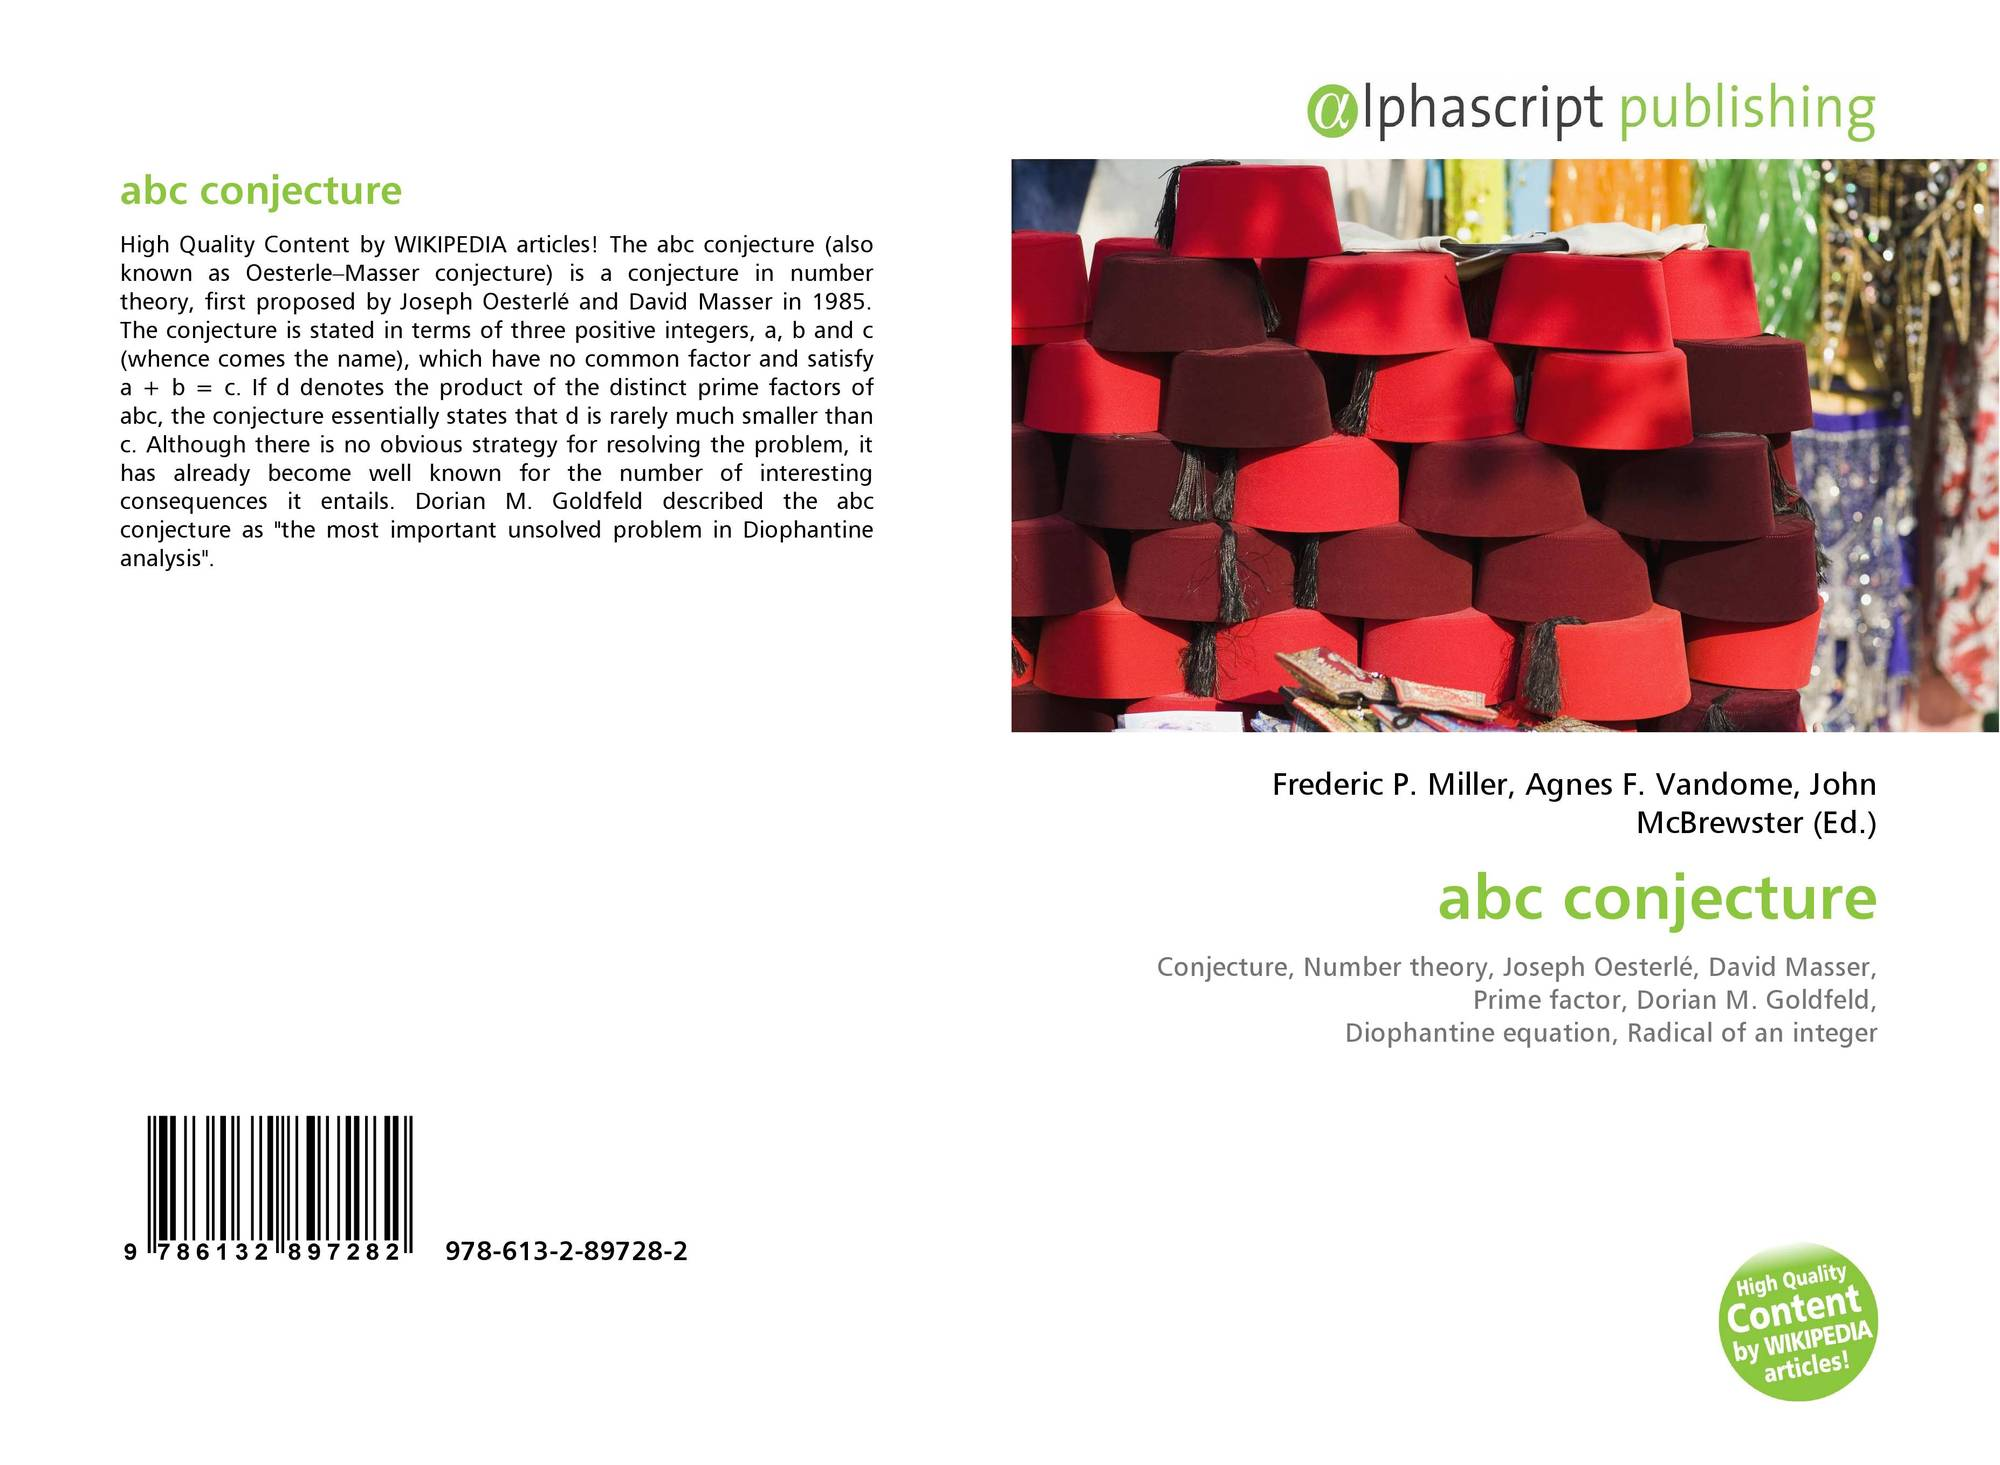 the abc conjecture